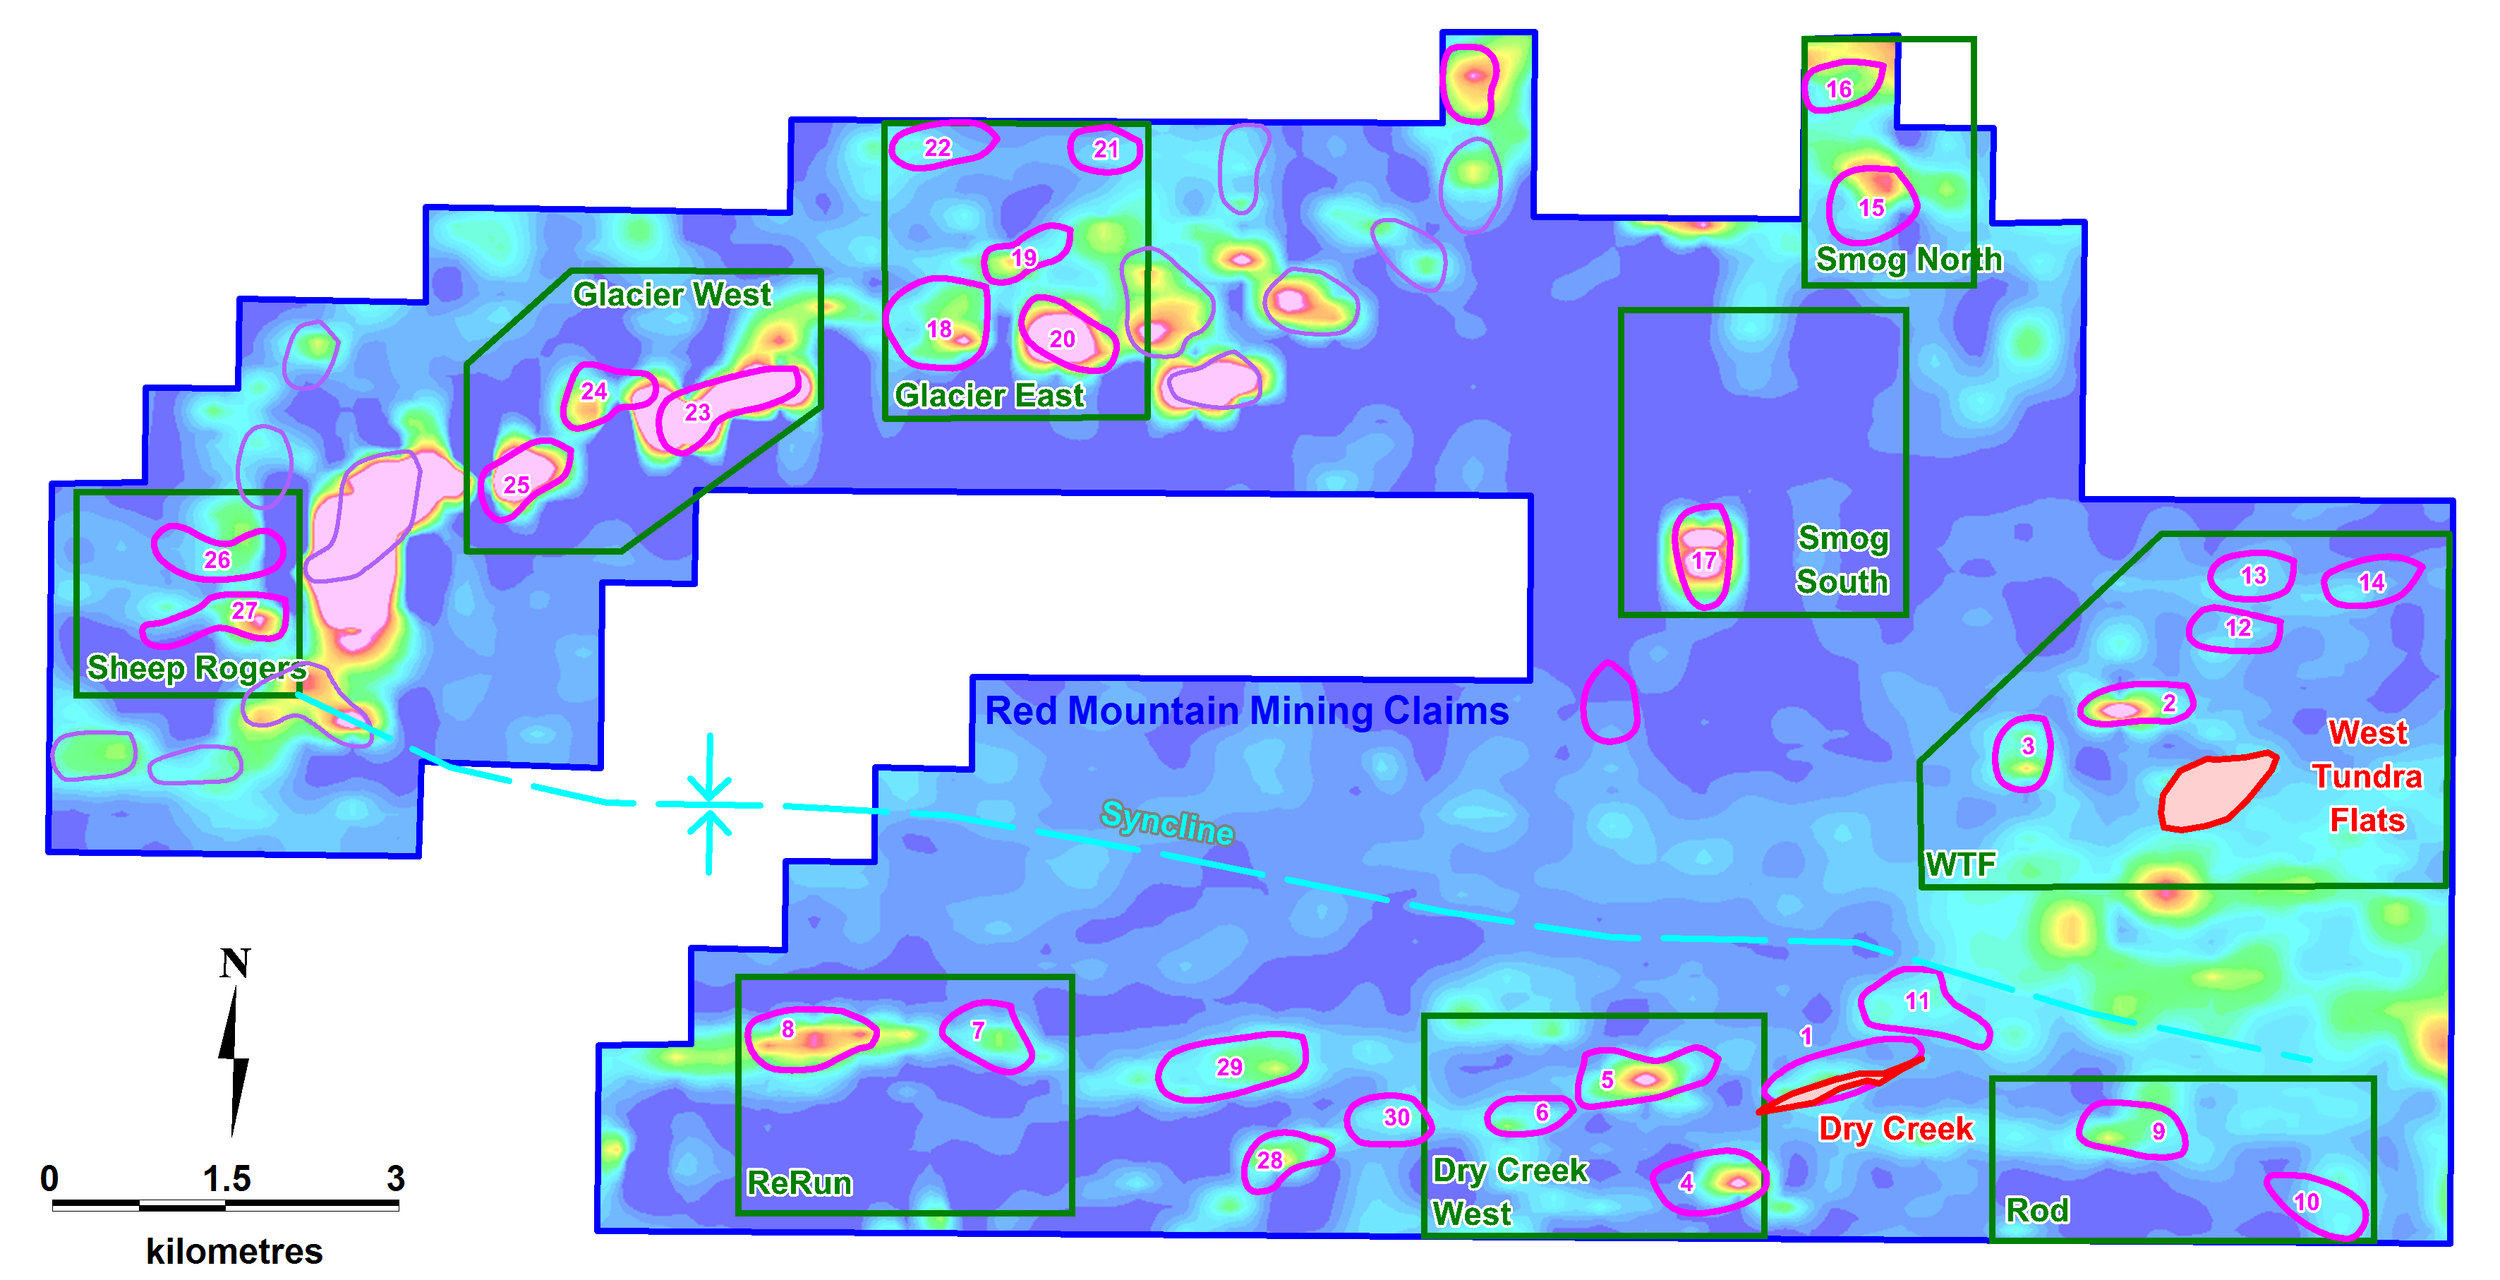 Figure 6    Red Mountain high priority conductors (pink) on a conductivity depth slice at 40m below surface from the 1D inversion of airborne electromagnetics. Locations for the Dry Creek and West Tundra Flats VMS deposits, and target areas (ReRun, Dry Creek West, Rod, WTF, Smog South, Smog North, Glacier East, Glacier West and Sheep Rogers) are defined by geochemical alteration (in green boxes), and the corridor of conductors along the northeast trend from Dry Creek to West Tundra Flats (dashed yellow line).